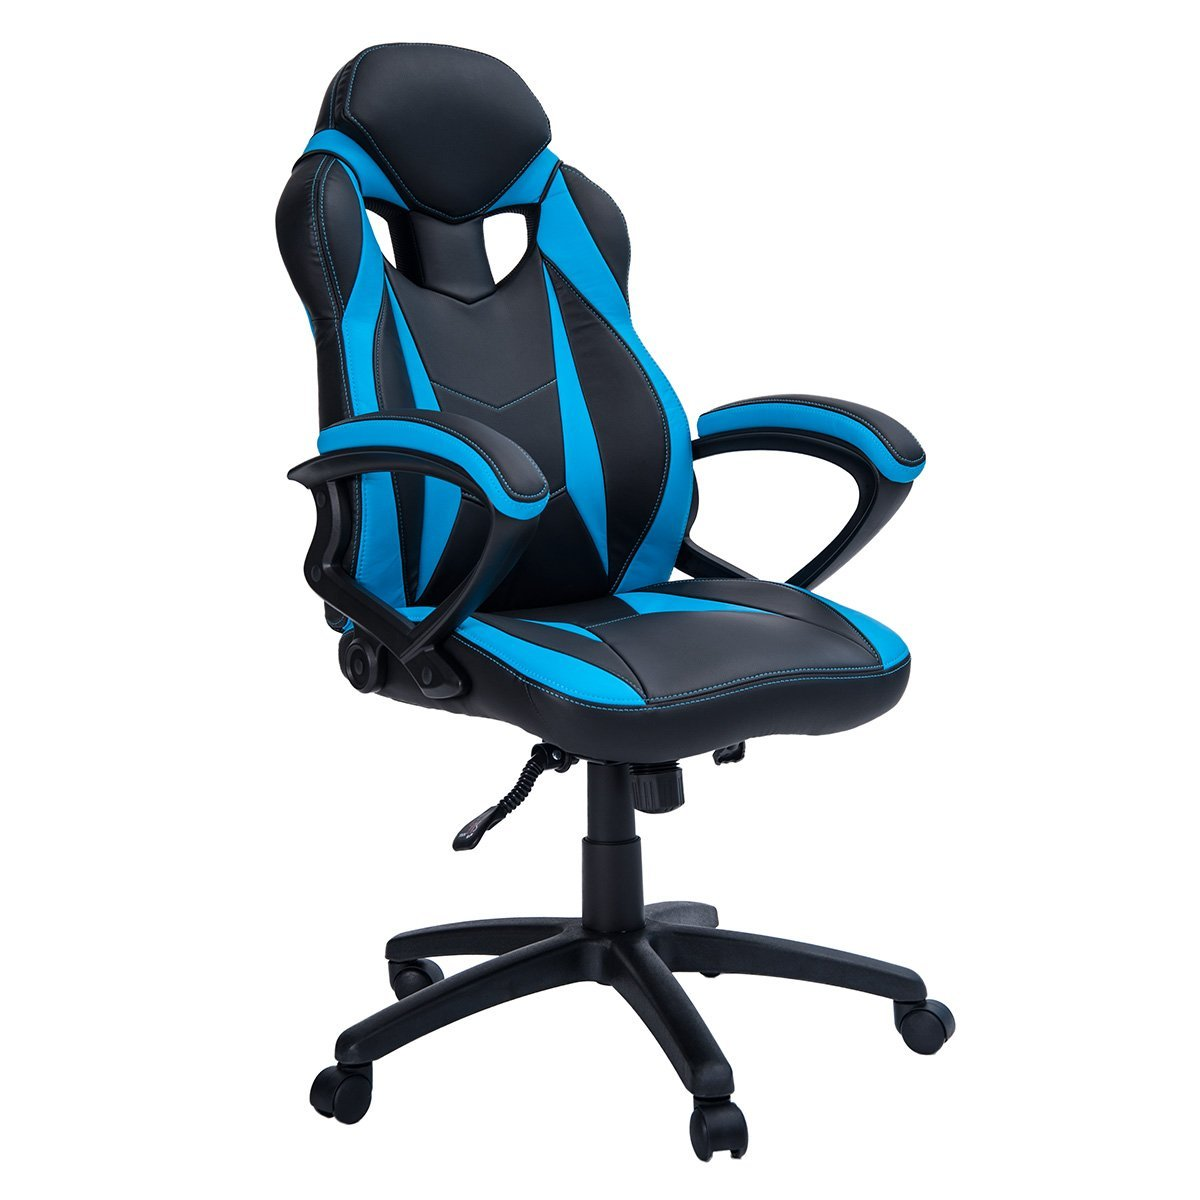 Cheap Office Chairs Part - 34: The Reason Why Ergonomic Chairs Are So Popular Among The Students,  Businessmen, And Office Workers Is The Great Comfort That It Provides.